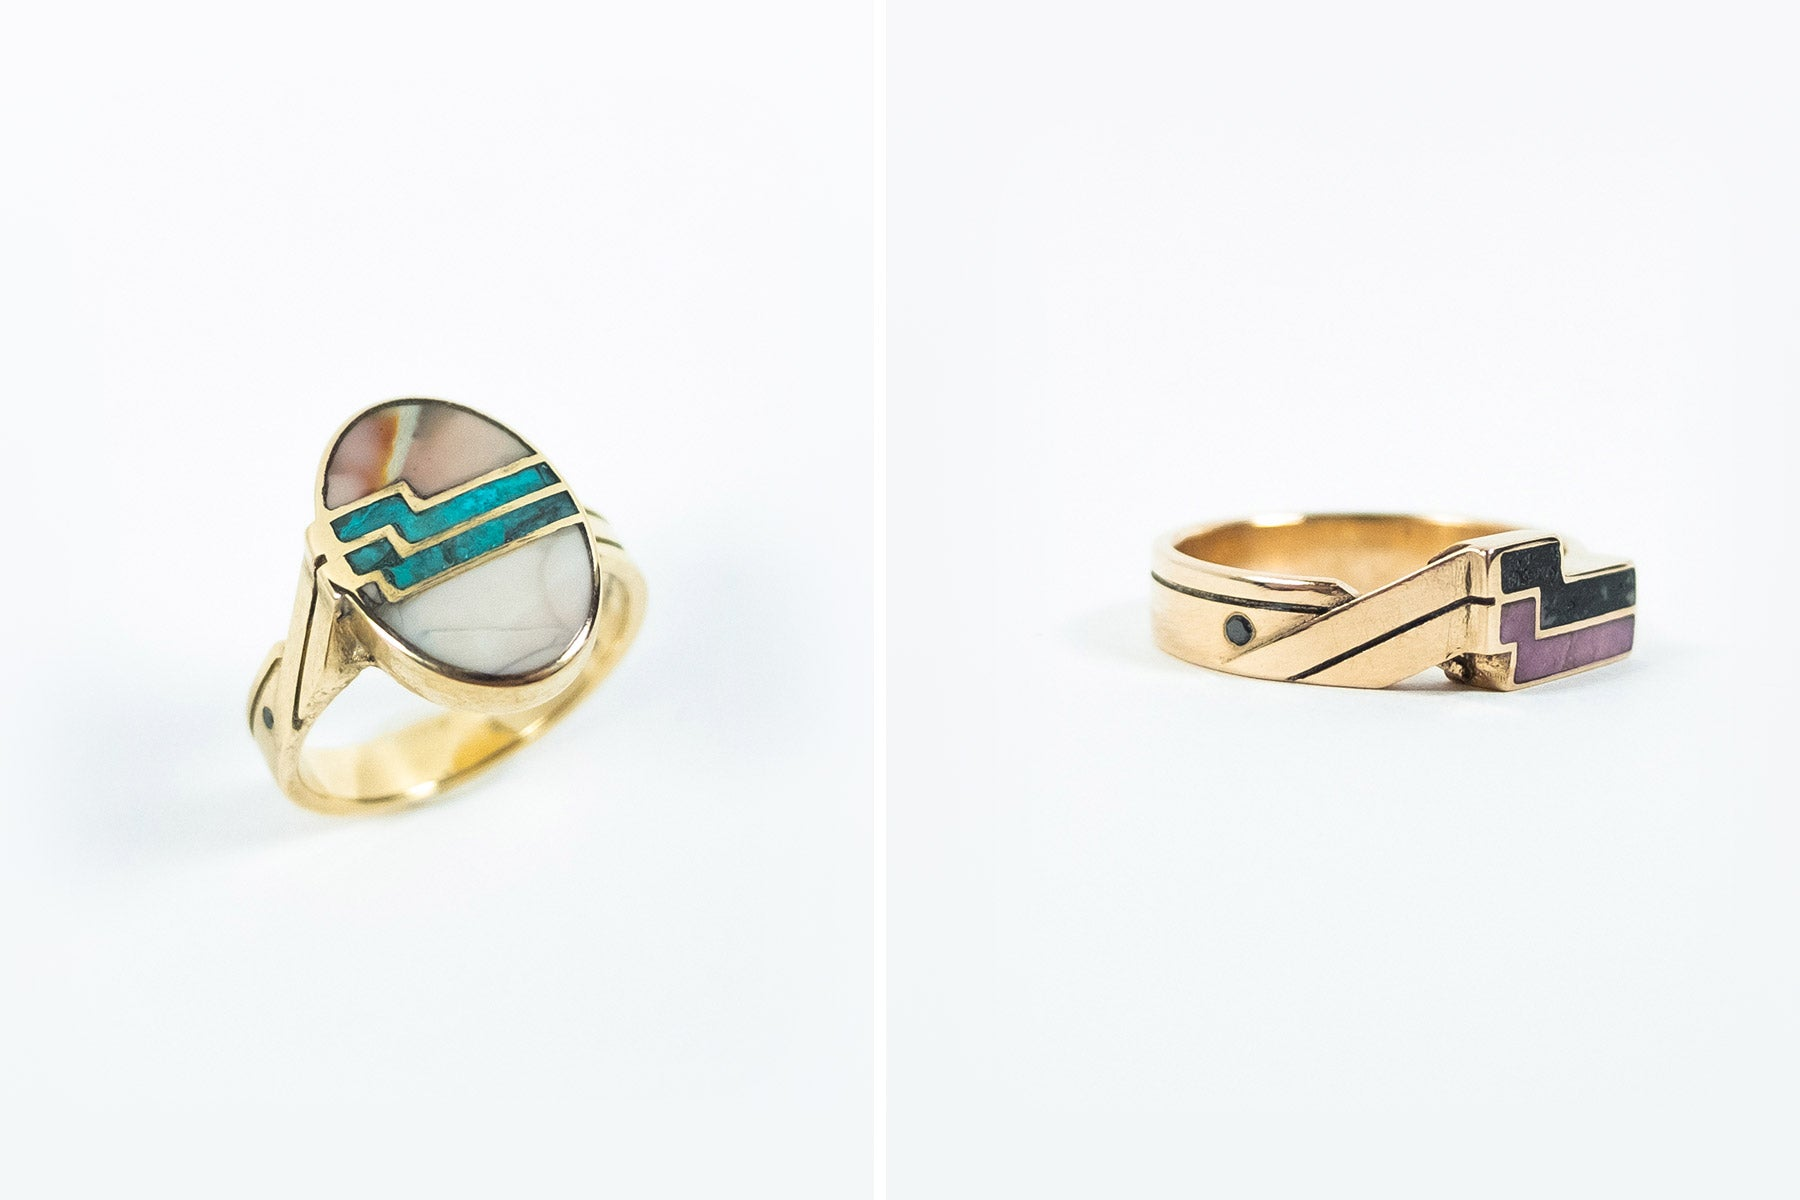 Mens and womens custom designed rings with rhodonite chrysocolla and willow jasper stones flush set into 14k yellow gold